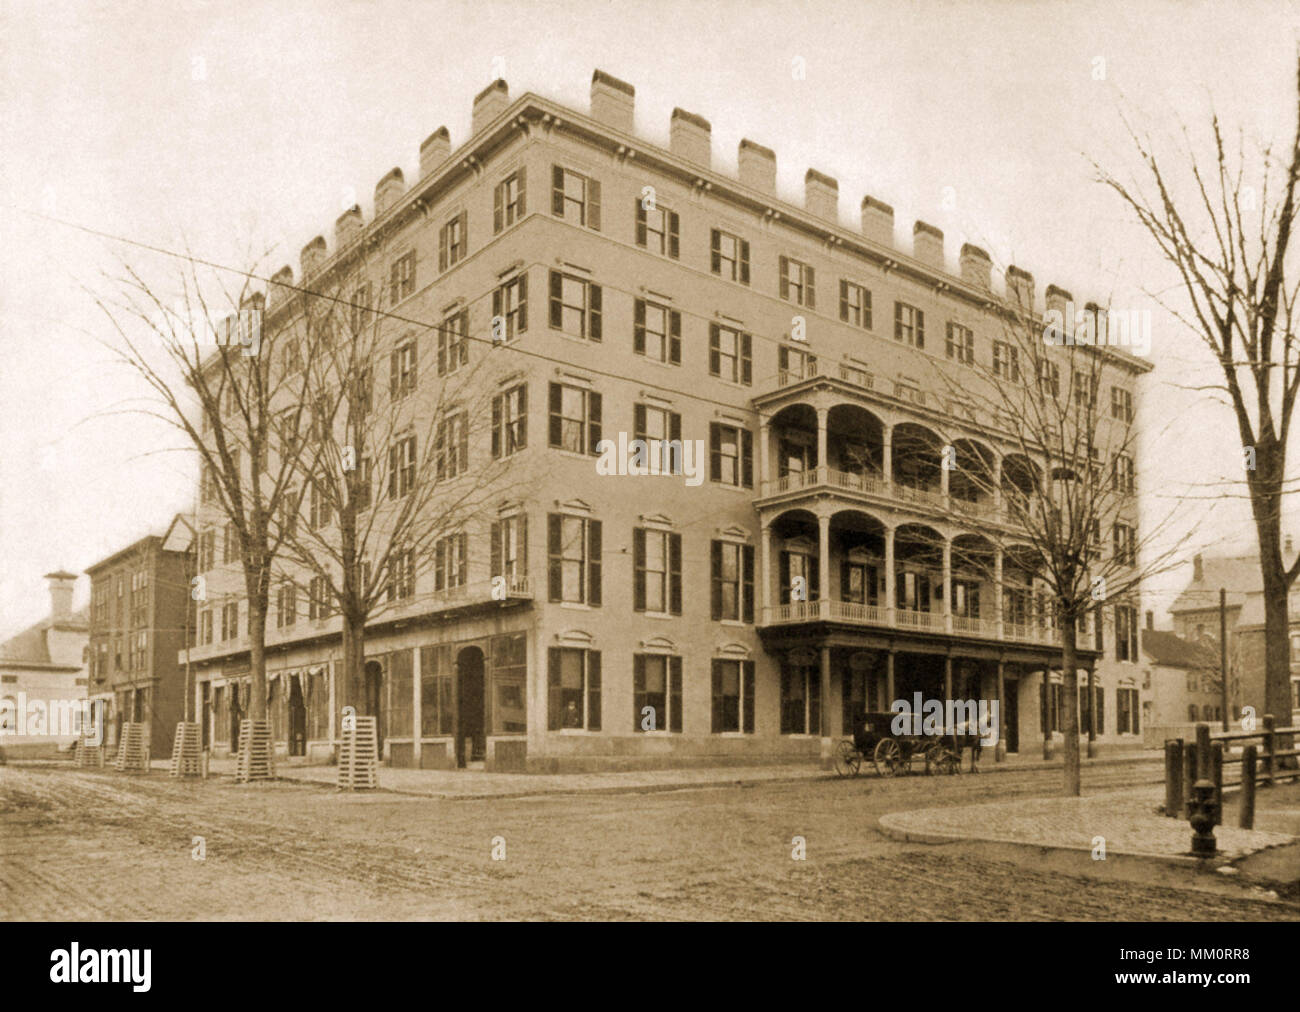 De Witt House. Lewiston. 1900 - Stock Image